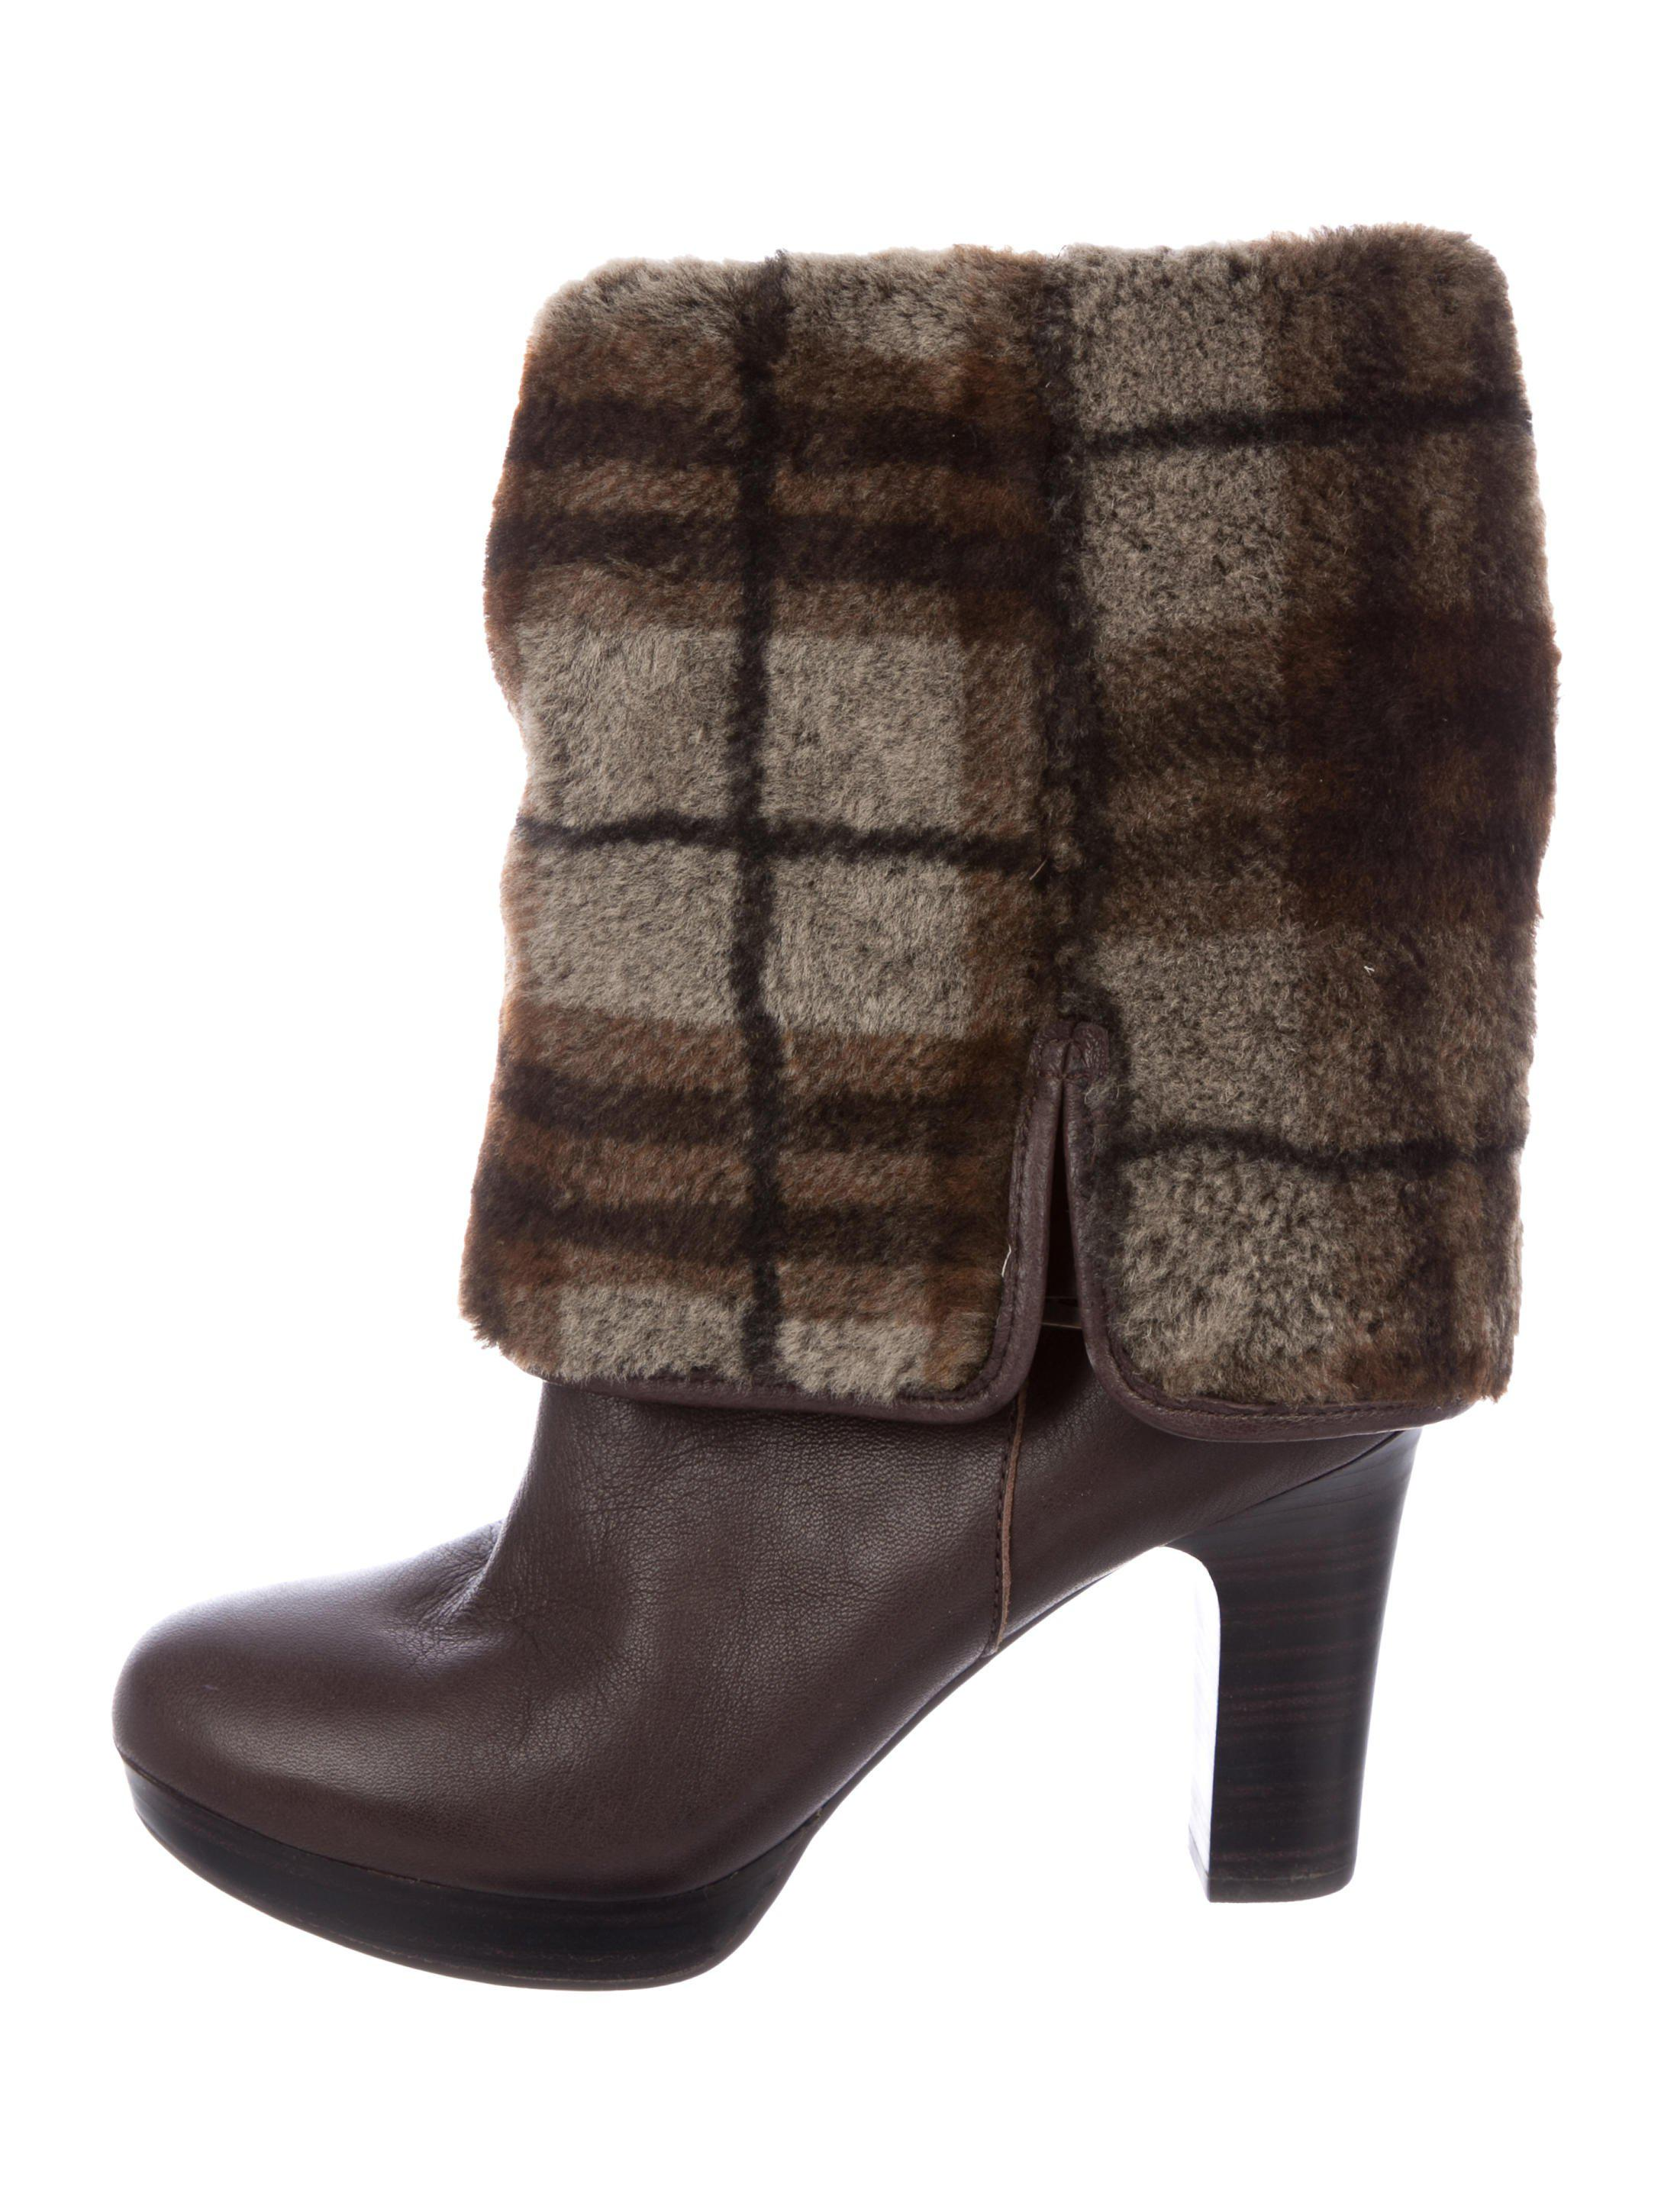 for sale free shipping sale amazon UGG Australia Savoie Fold-Over Booties w/ Tags sale the cheapest 3dxYWDcBw